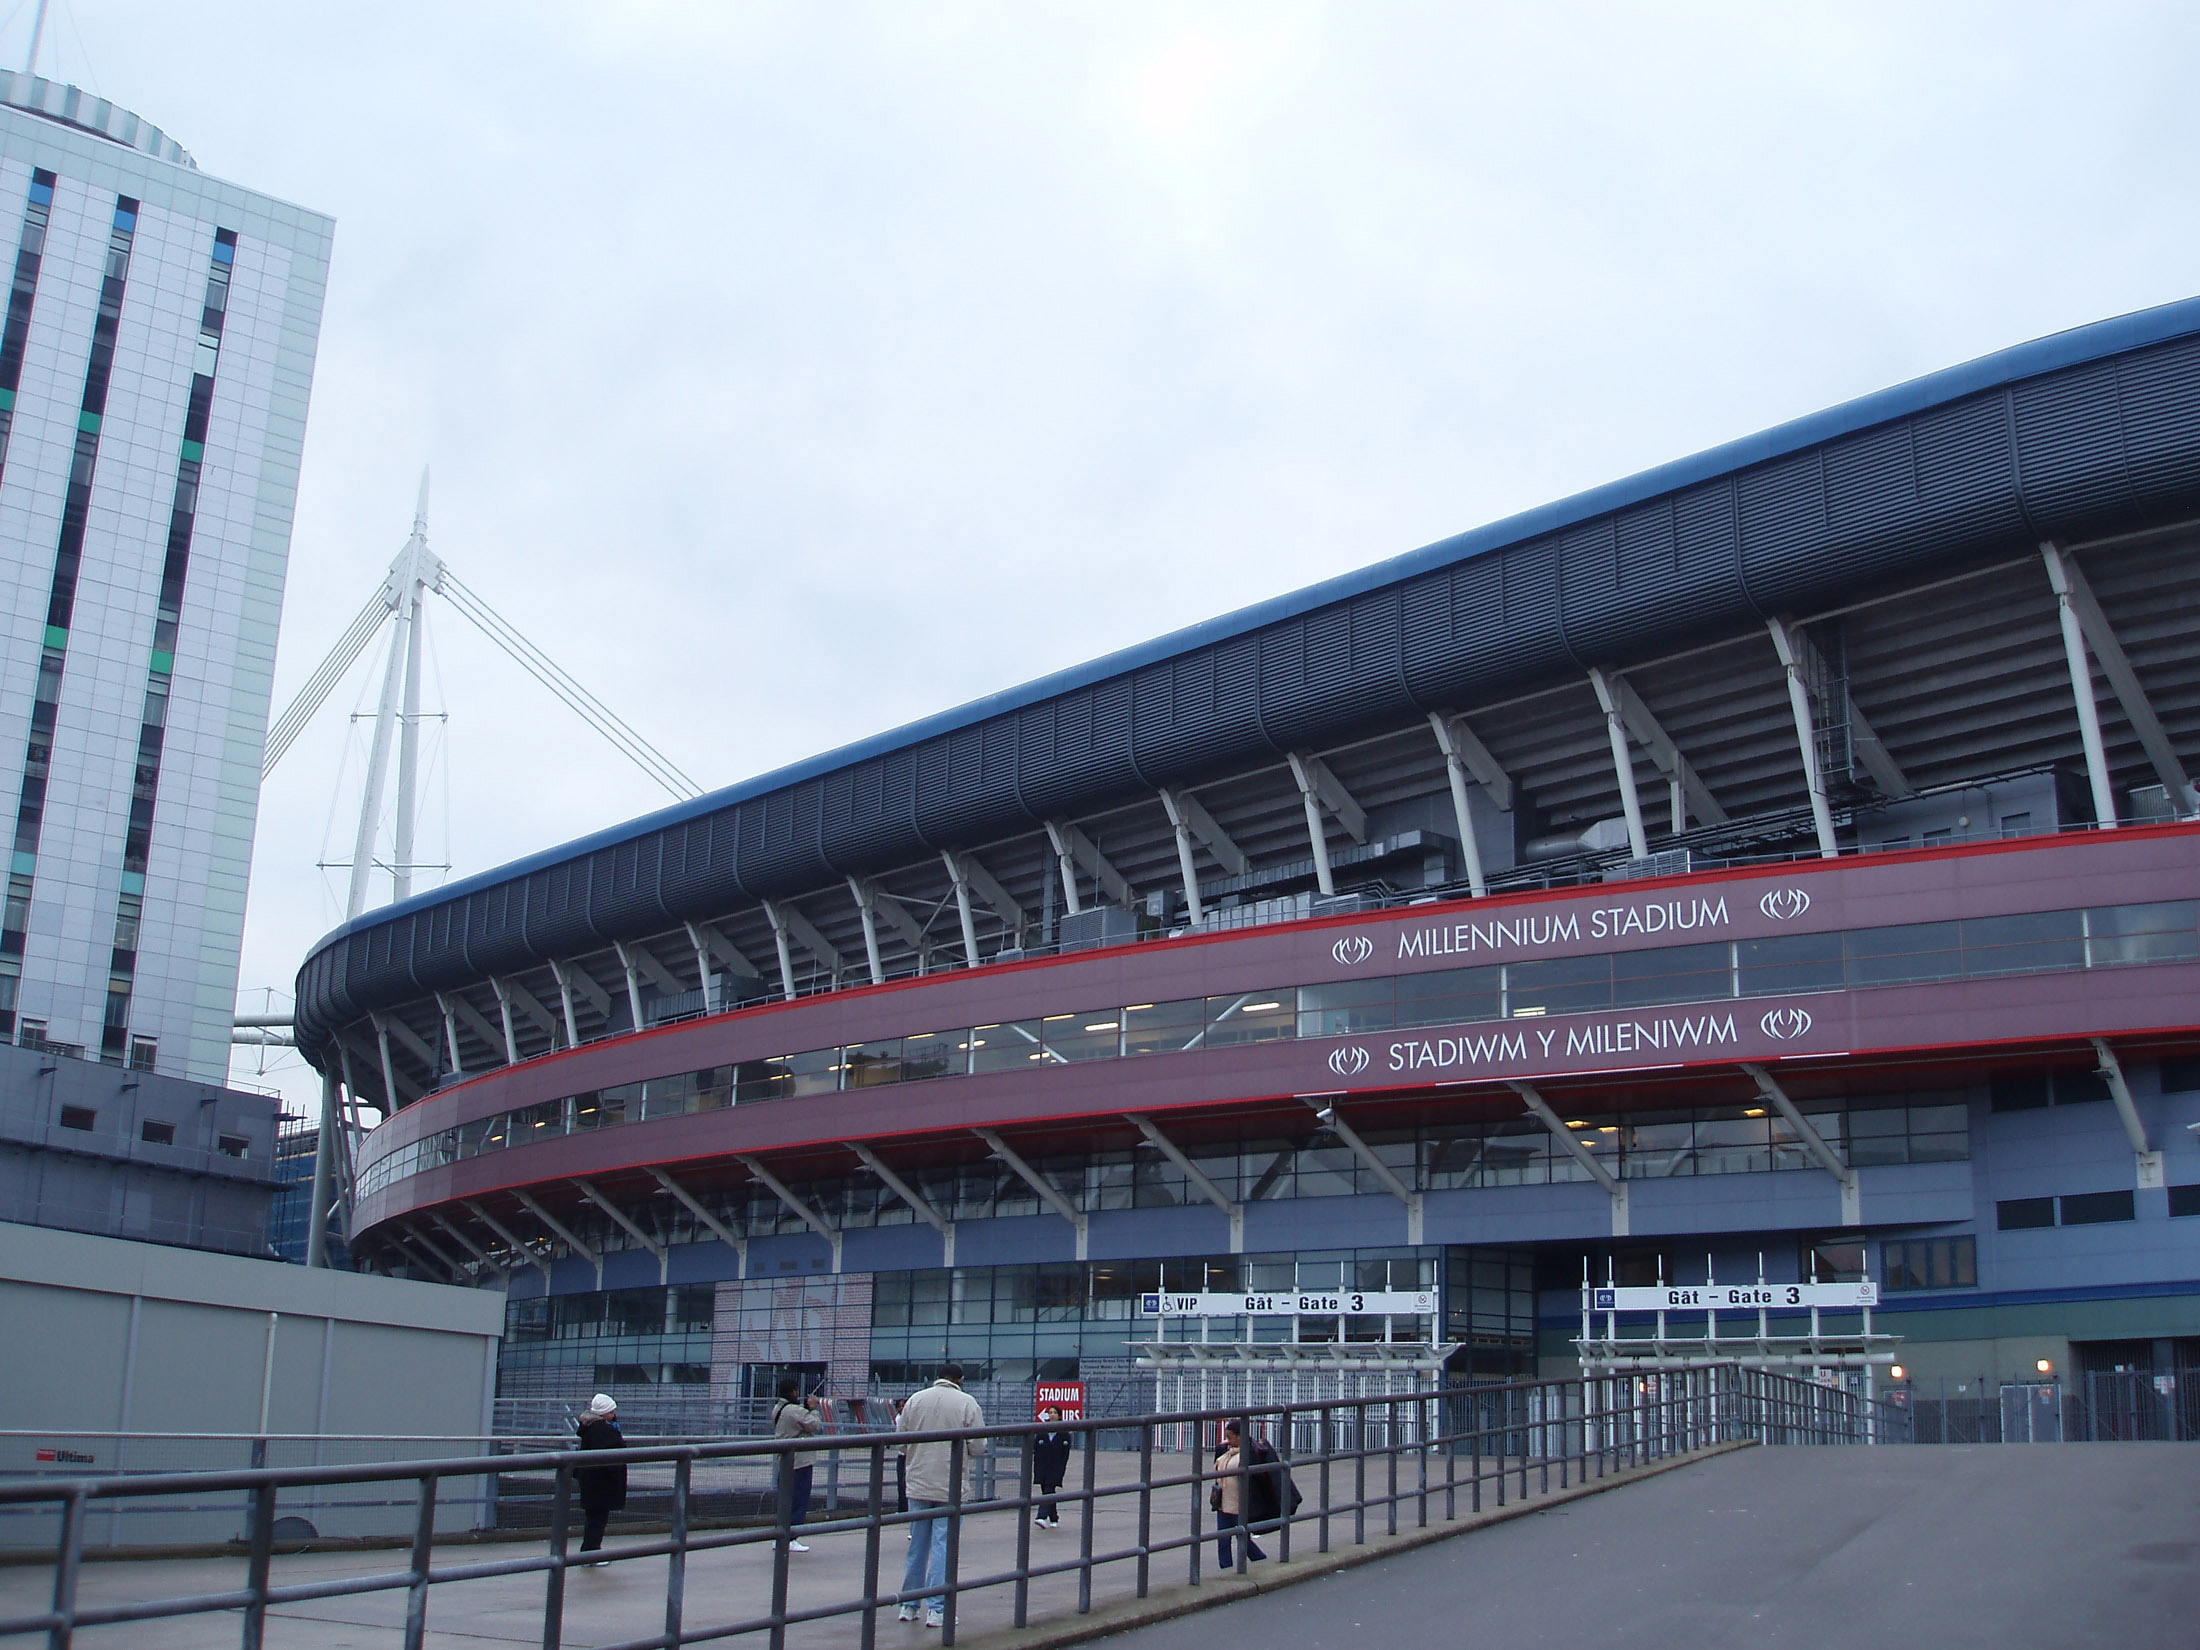 Millennium Stadium Building in Cardiff, Wales. The Home of Wales National Rugby Union Team.